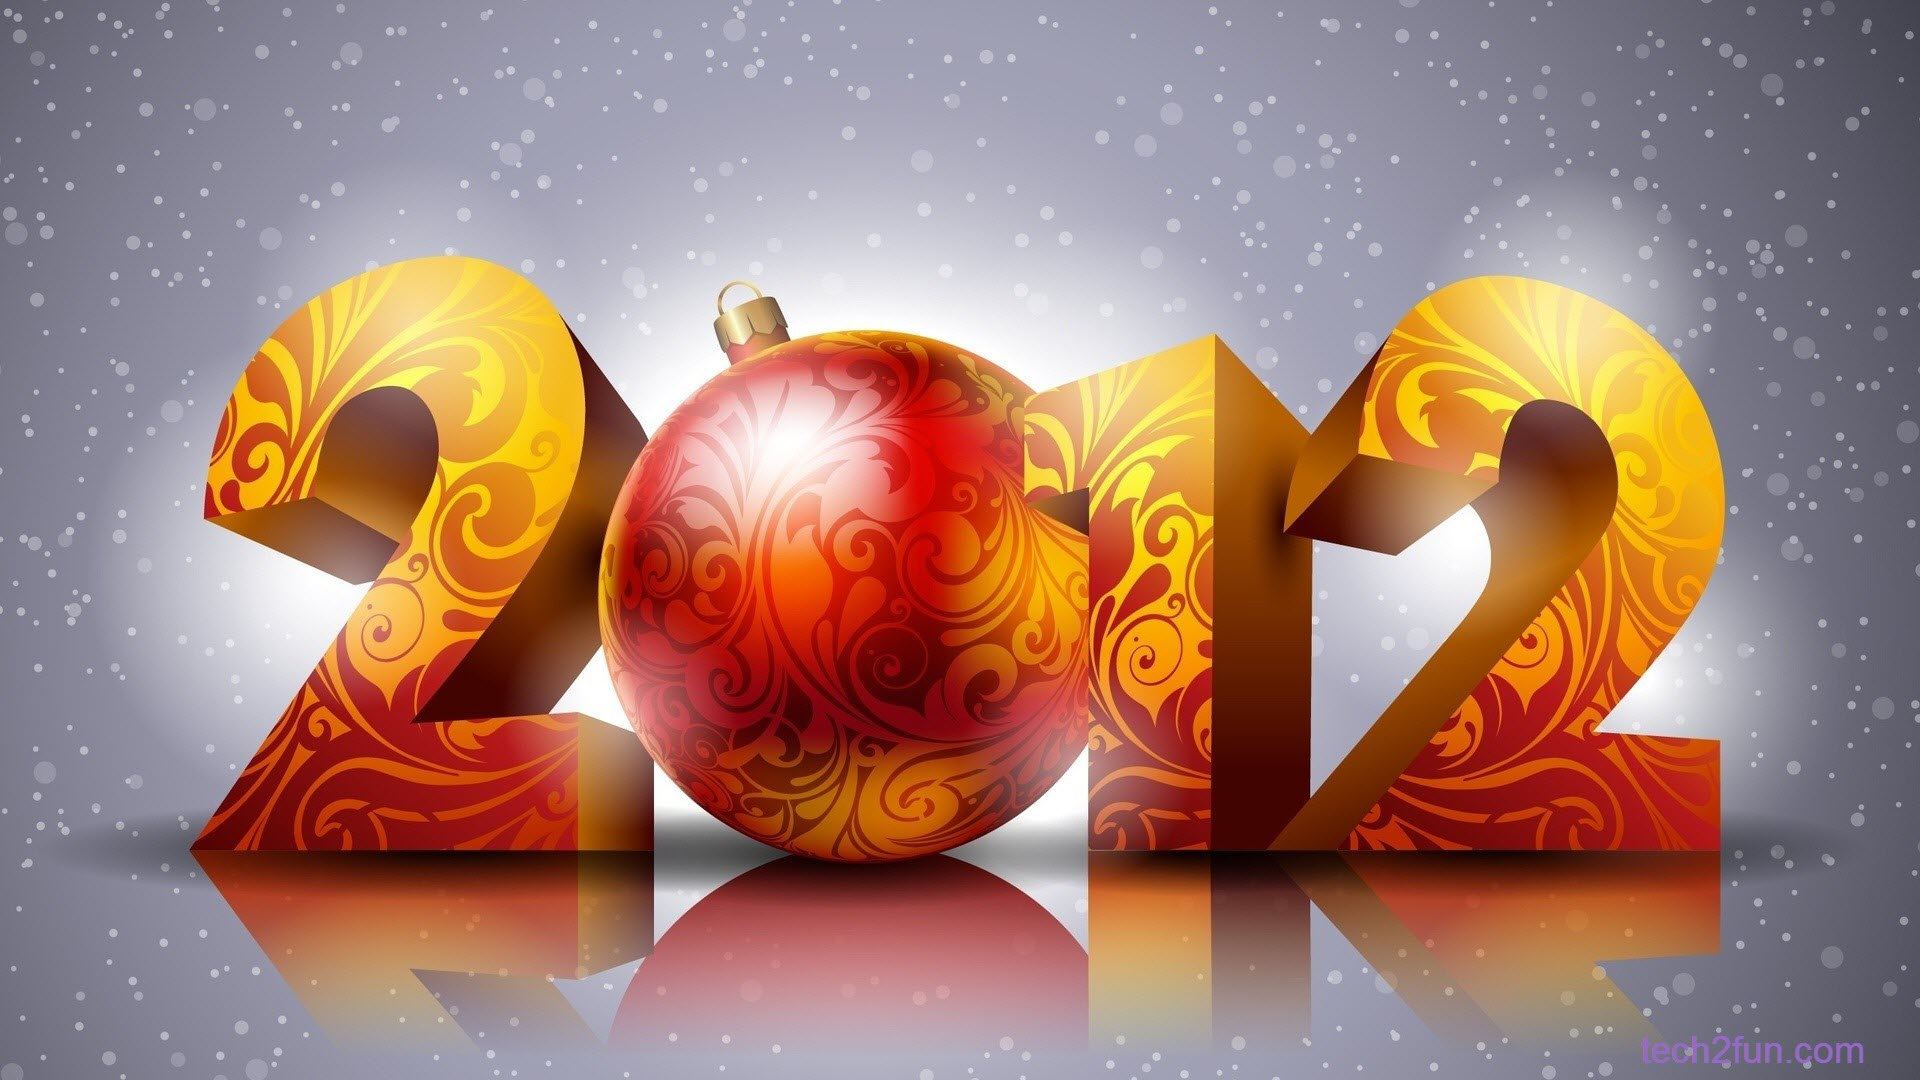 think that is part of a theme of windows 7 im not sure so i wanted to share it with everyone i hope all like happy new year to all